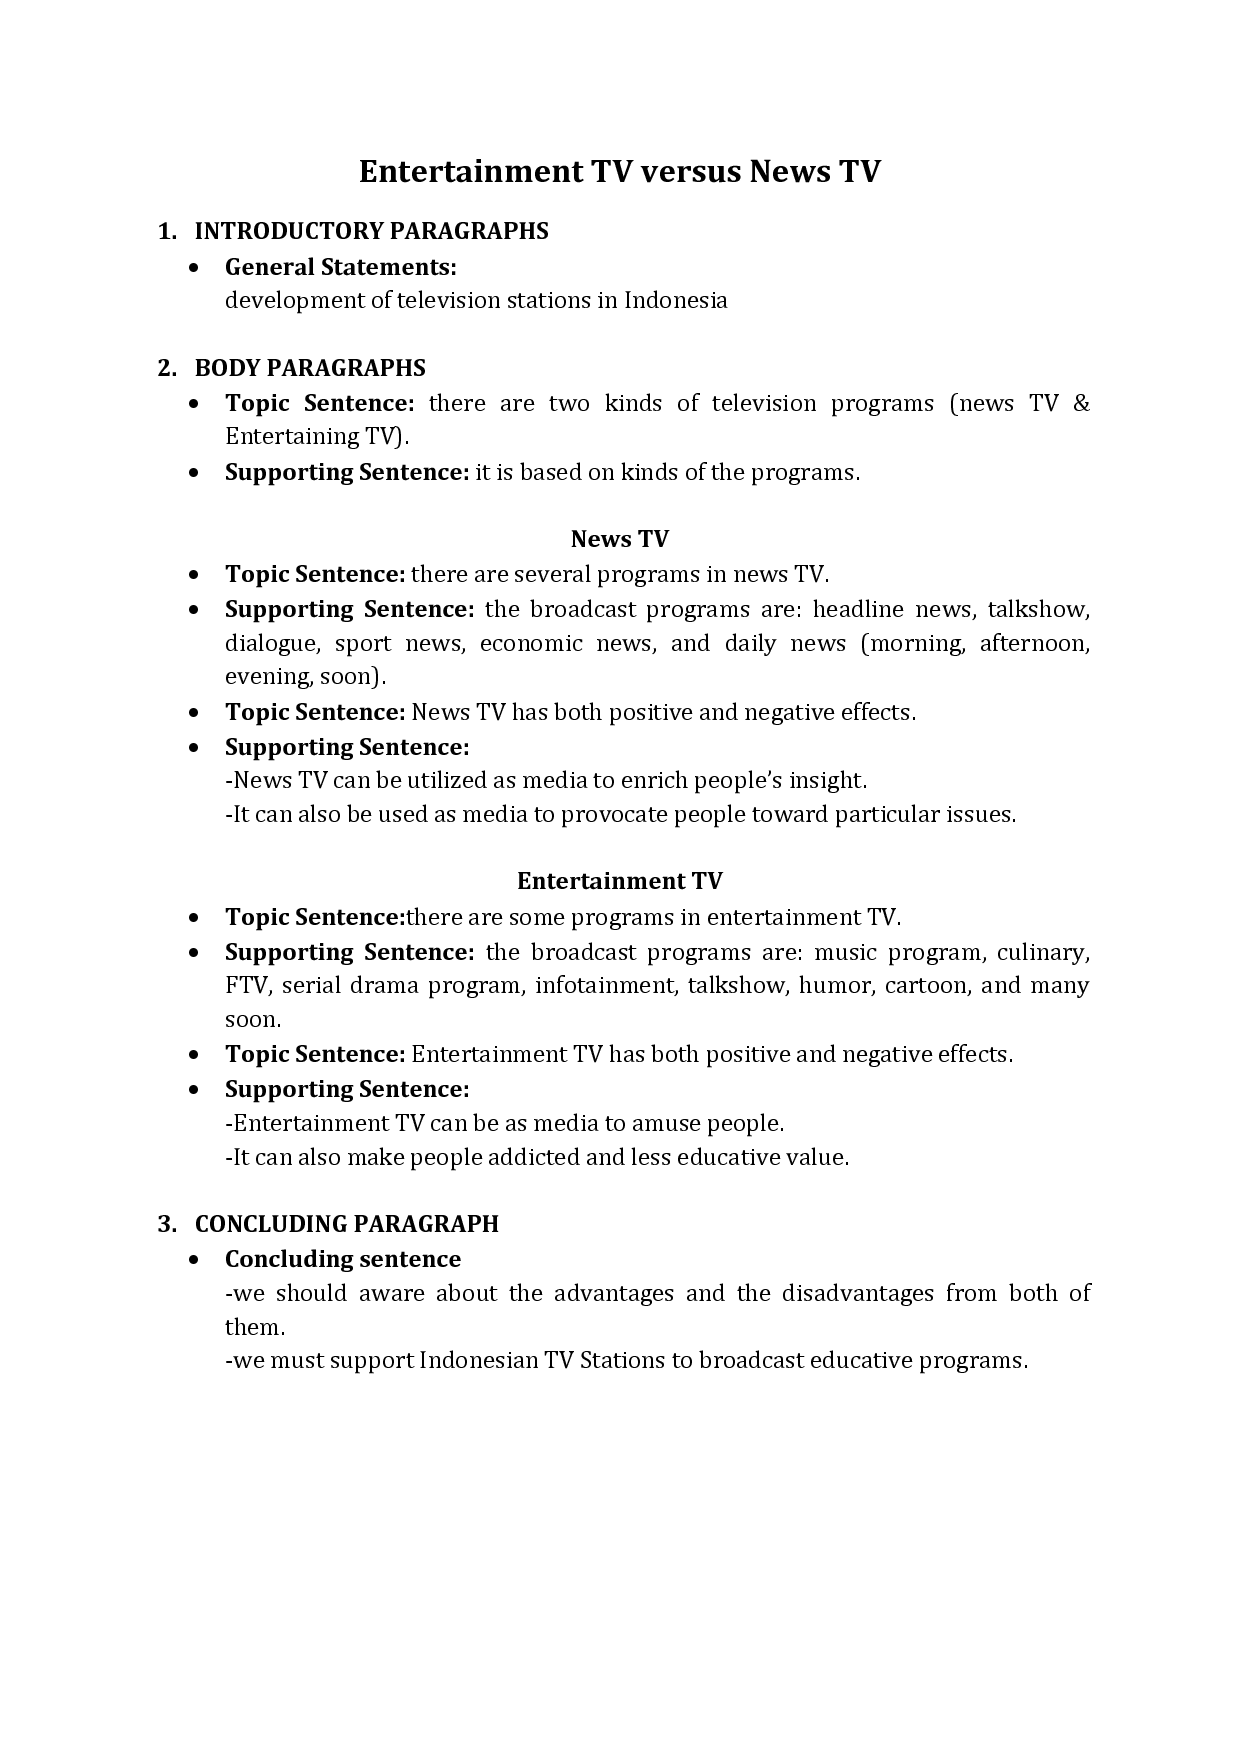 018 Fbunmxinib Outline To Essay Exceptional Format For Definition About Social Media Argumentative Middle School Full